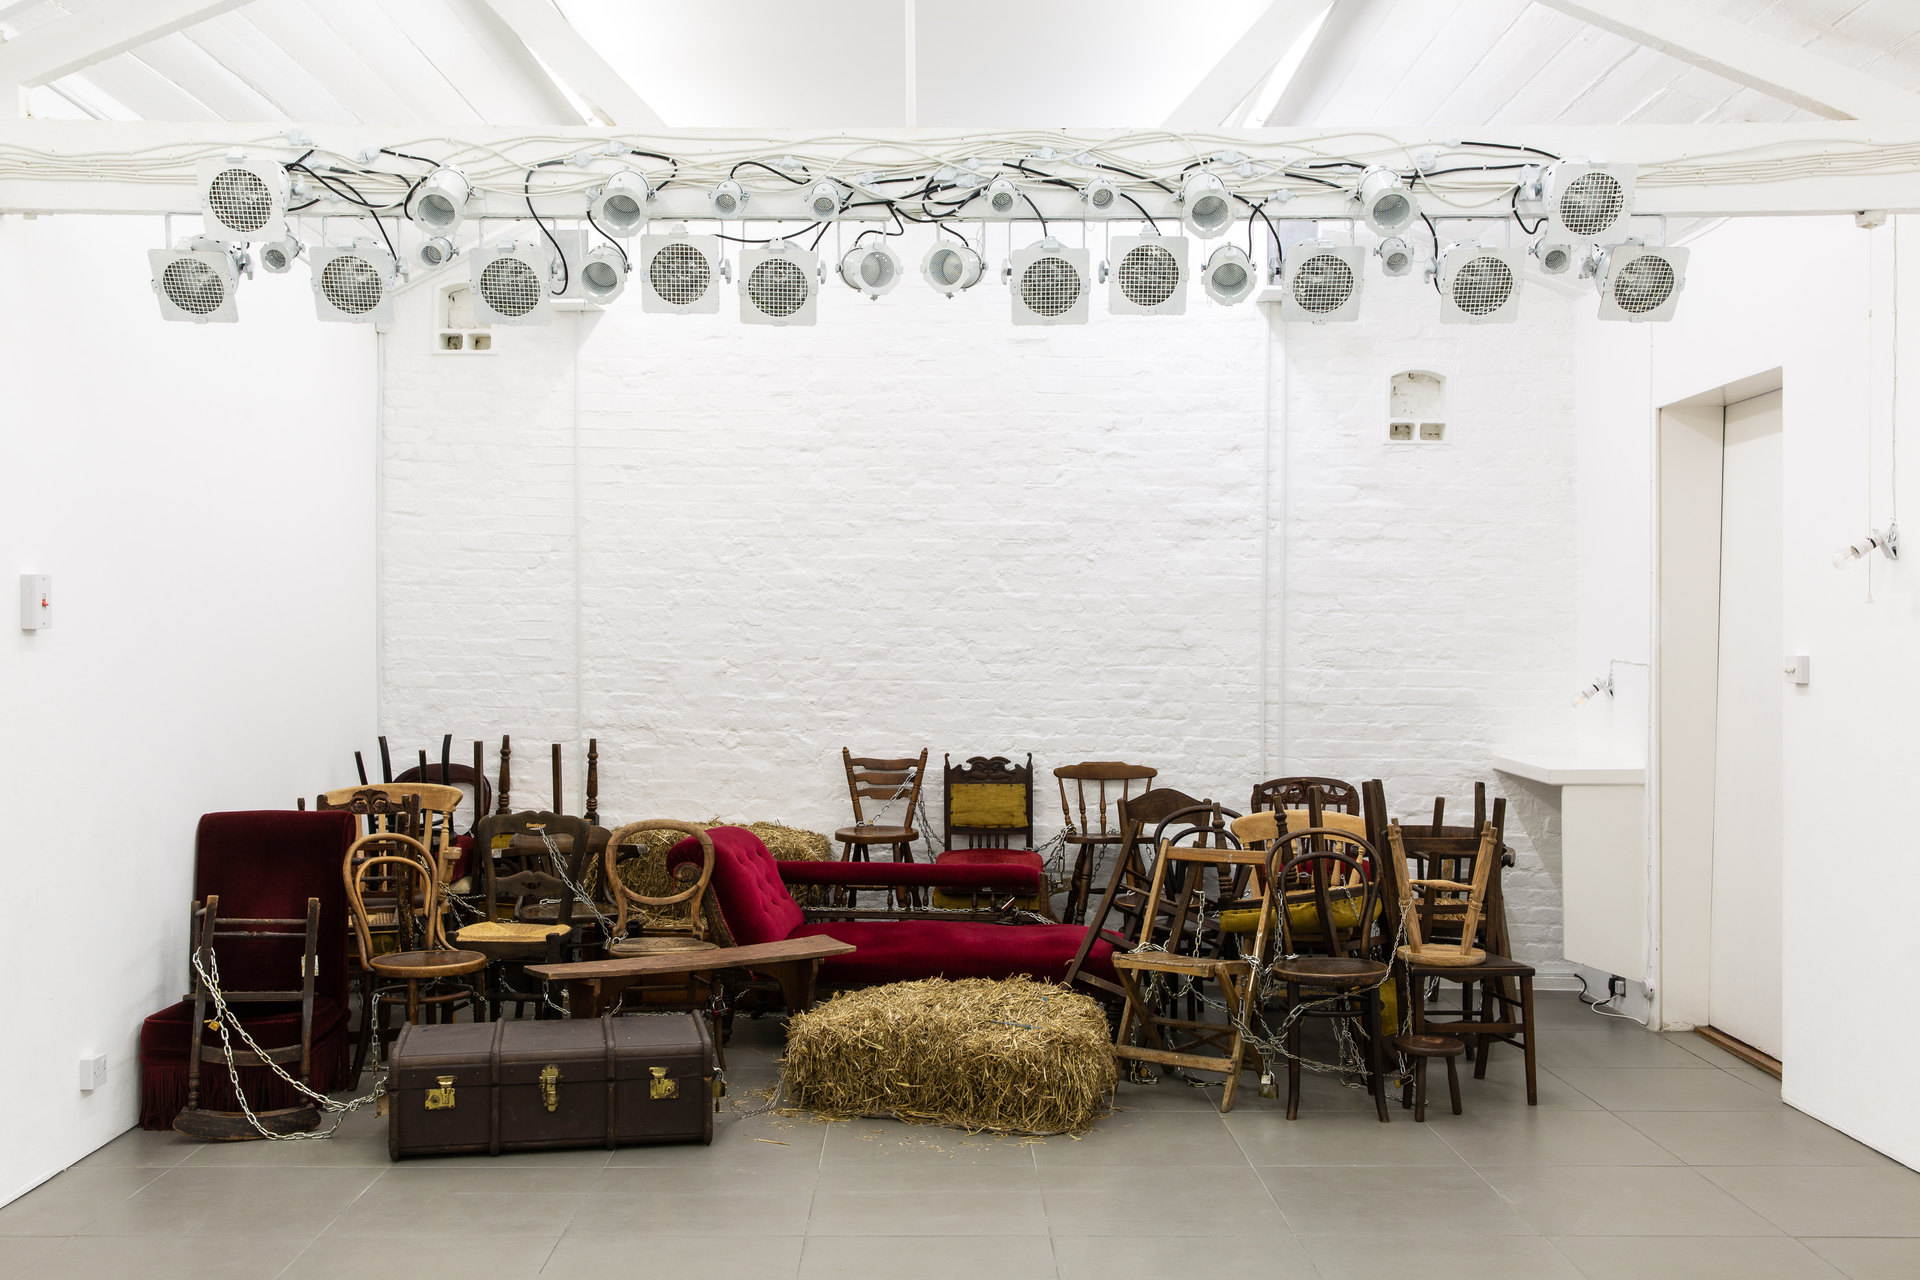 Alex Margo Arden and Caspar Heinemann, THE FARMYARD IS NOT A VIOLENT PLACE AND I LOOK EXACTLY LIKE JUDY GARLAND, Installation View, 2019, Cell Project Space